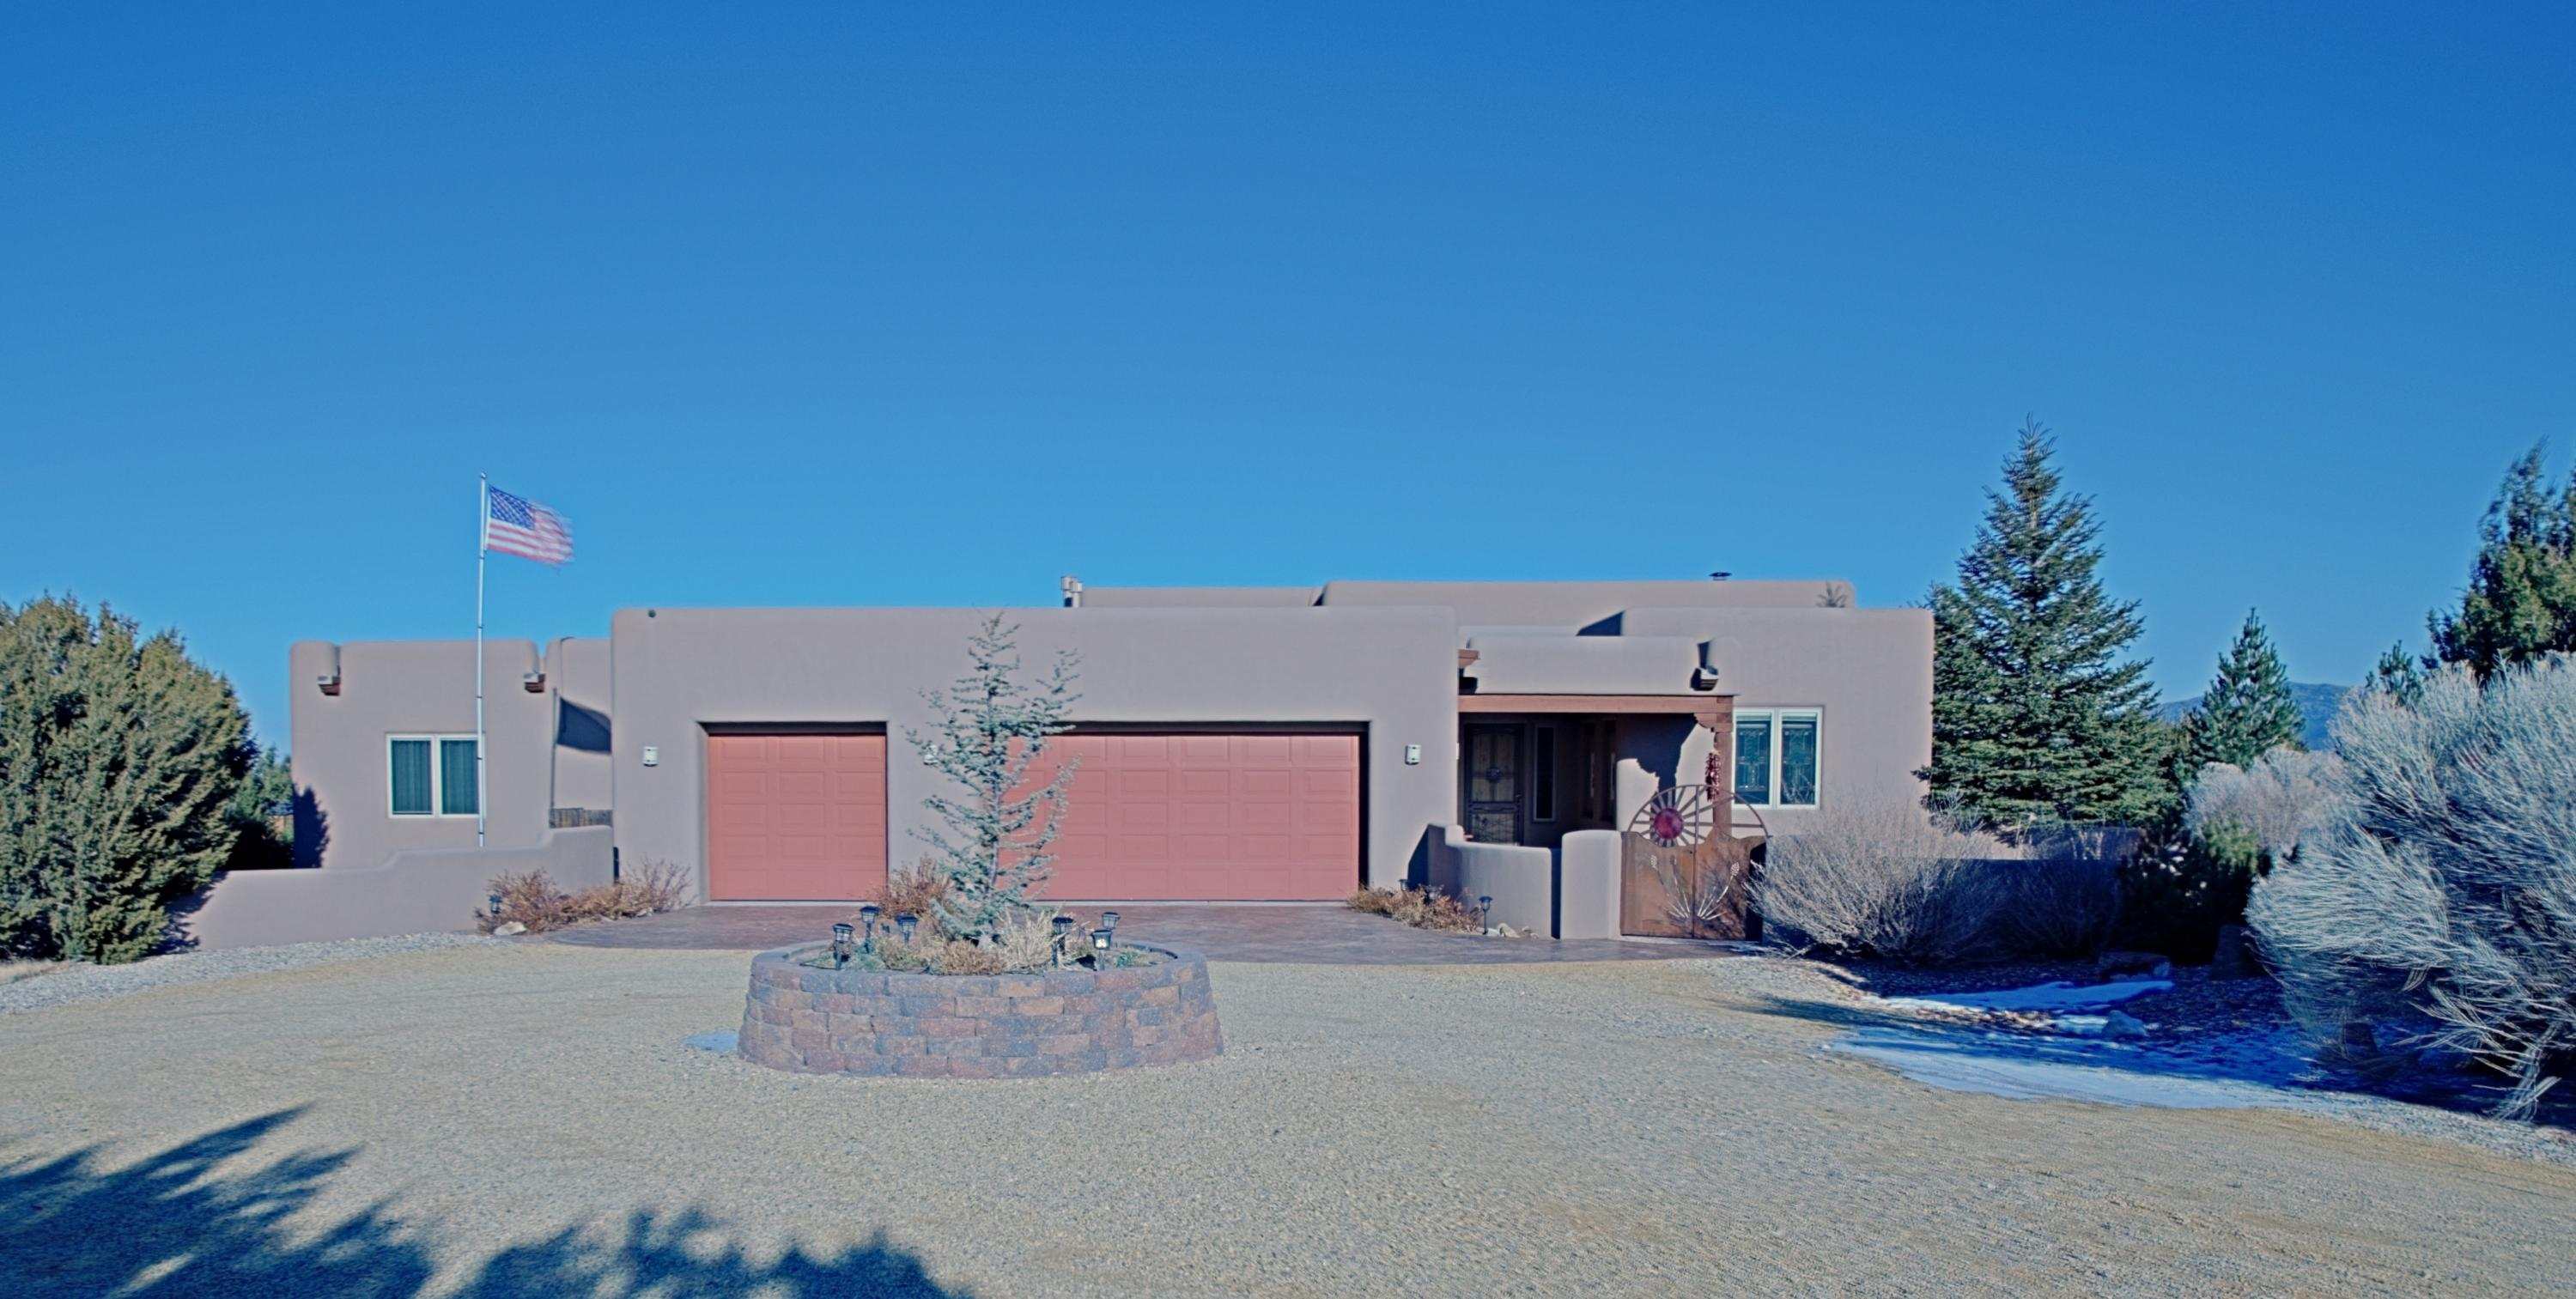 A Show Stopper! How would you like to live in a community where all the homes are on 10 acres surrounded by five majestic mountain ranges where you can hike, bike and ride horses to your heart's content? Located in San Pedro Creek Estates just an easy 35 minute drive to Albuquerque and 50 minutes to Santa Fe you have the best of both worlds. This home is an exceptional Crombie built home all on one level. With over 3100 sq ft to enjoy and two walled courtyards beautifully landscaped including a backyard water feature. The oversized garage is large enough to house the perfect man cave area and contains the temperature-controlled wine room, a sauna and the third garage bay can be used for storage, exercise equipment or for a third vehicle.  Schedule a showing today, this will not last long!